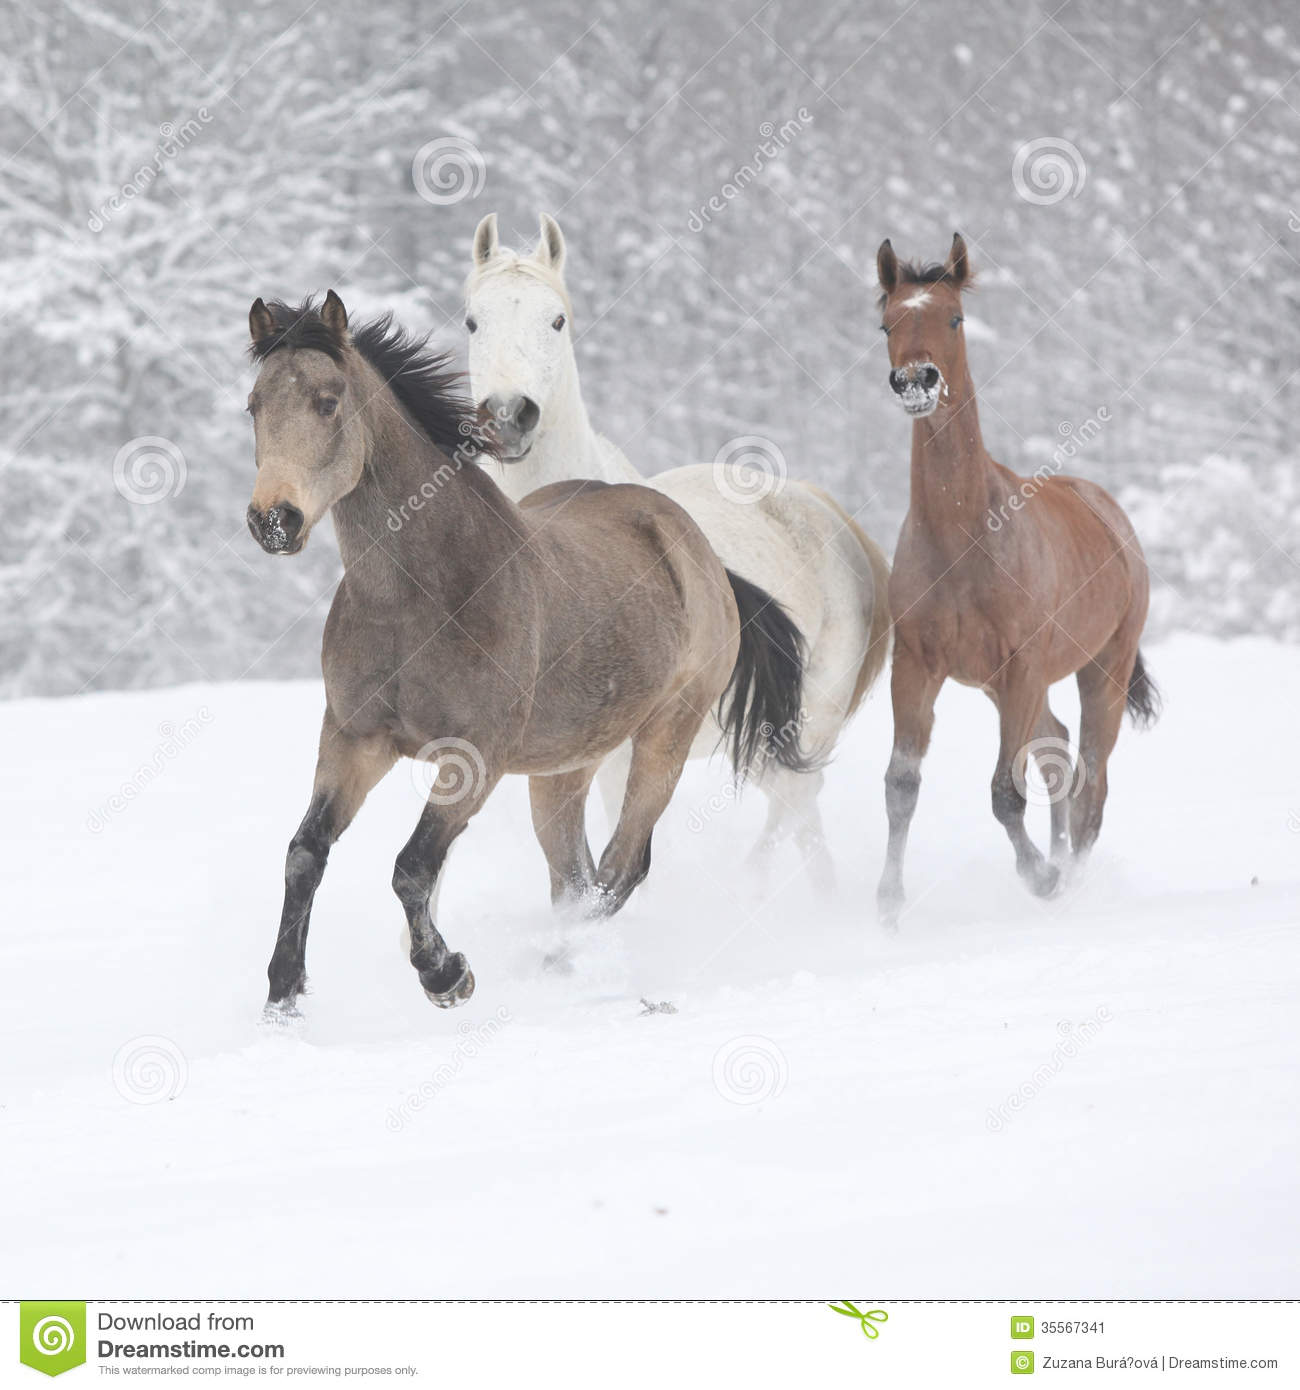 Free Snow Falling Wallpaper Batch Of Horses Running In Winter Stock Image Image Of